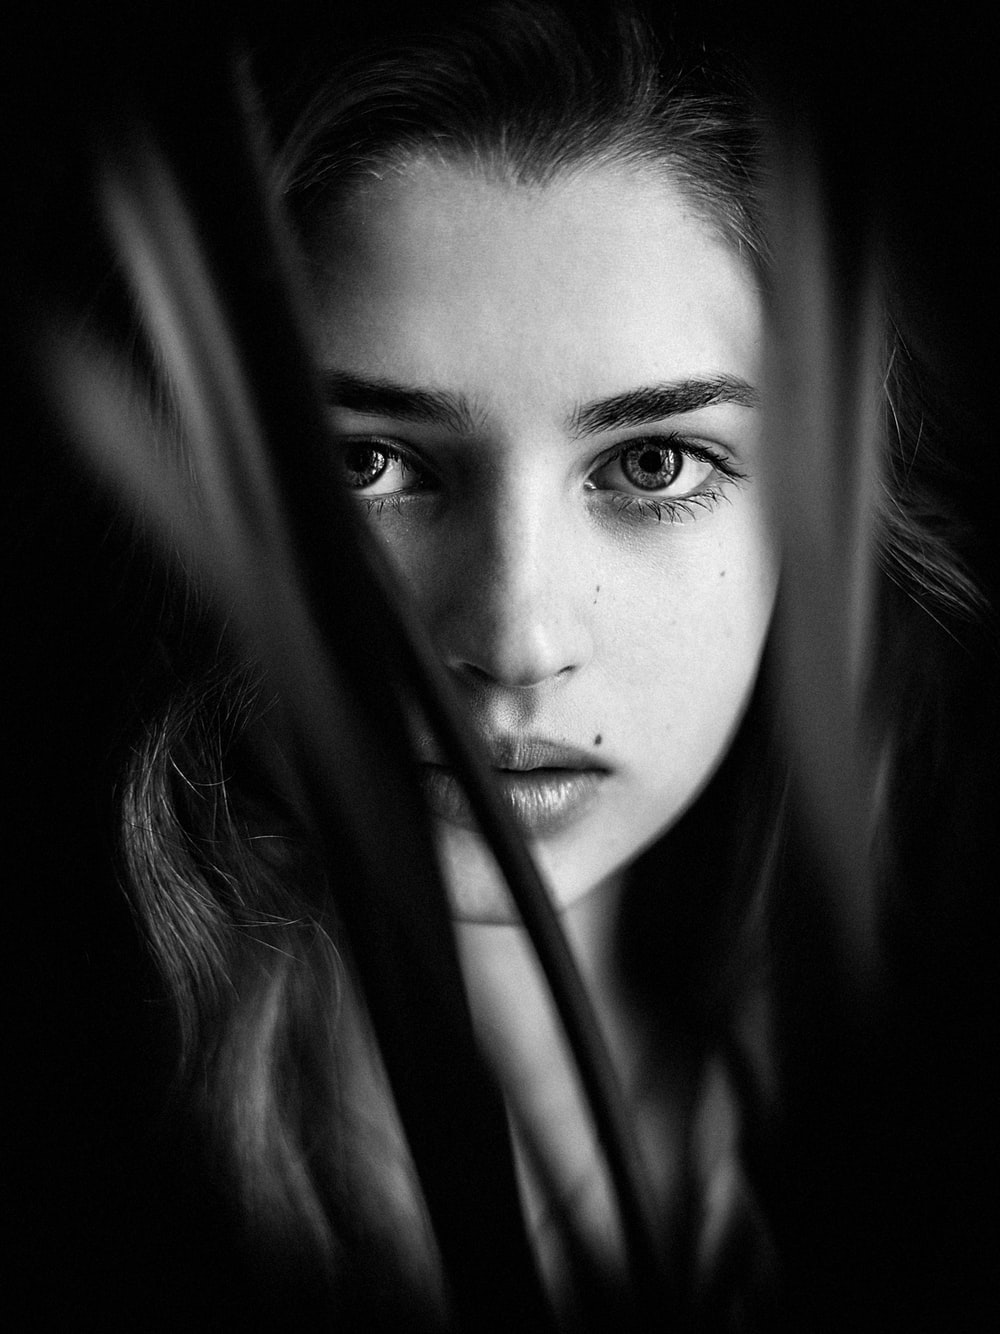 womans face in grayscale photography